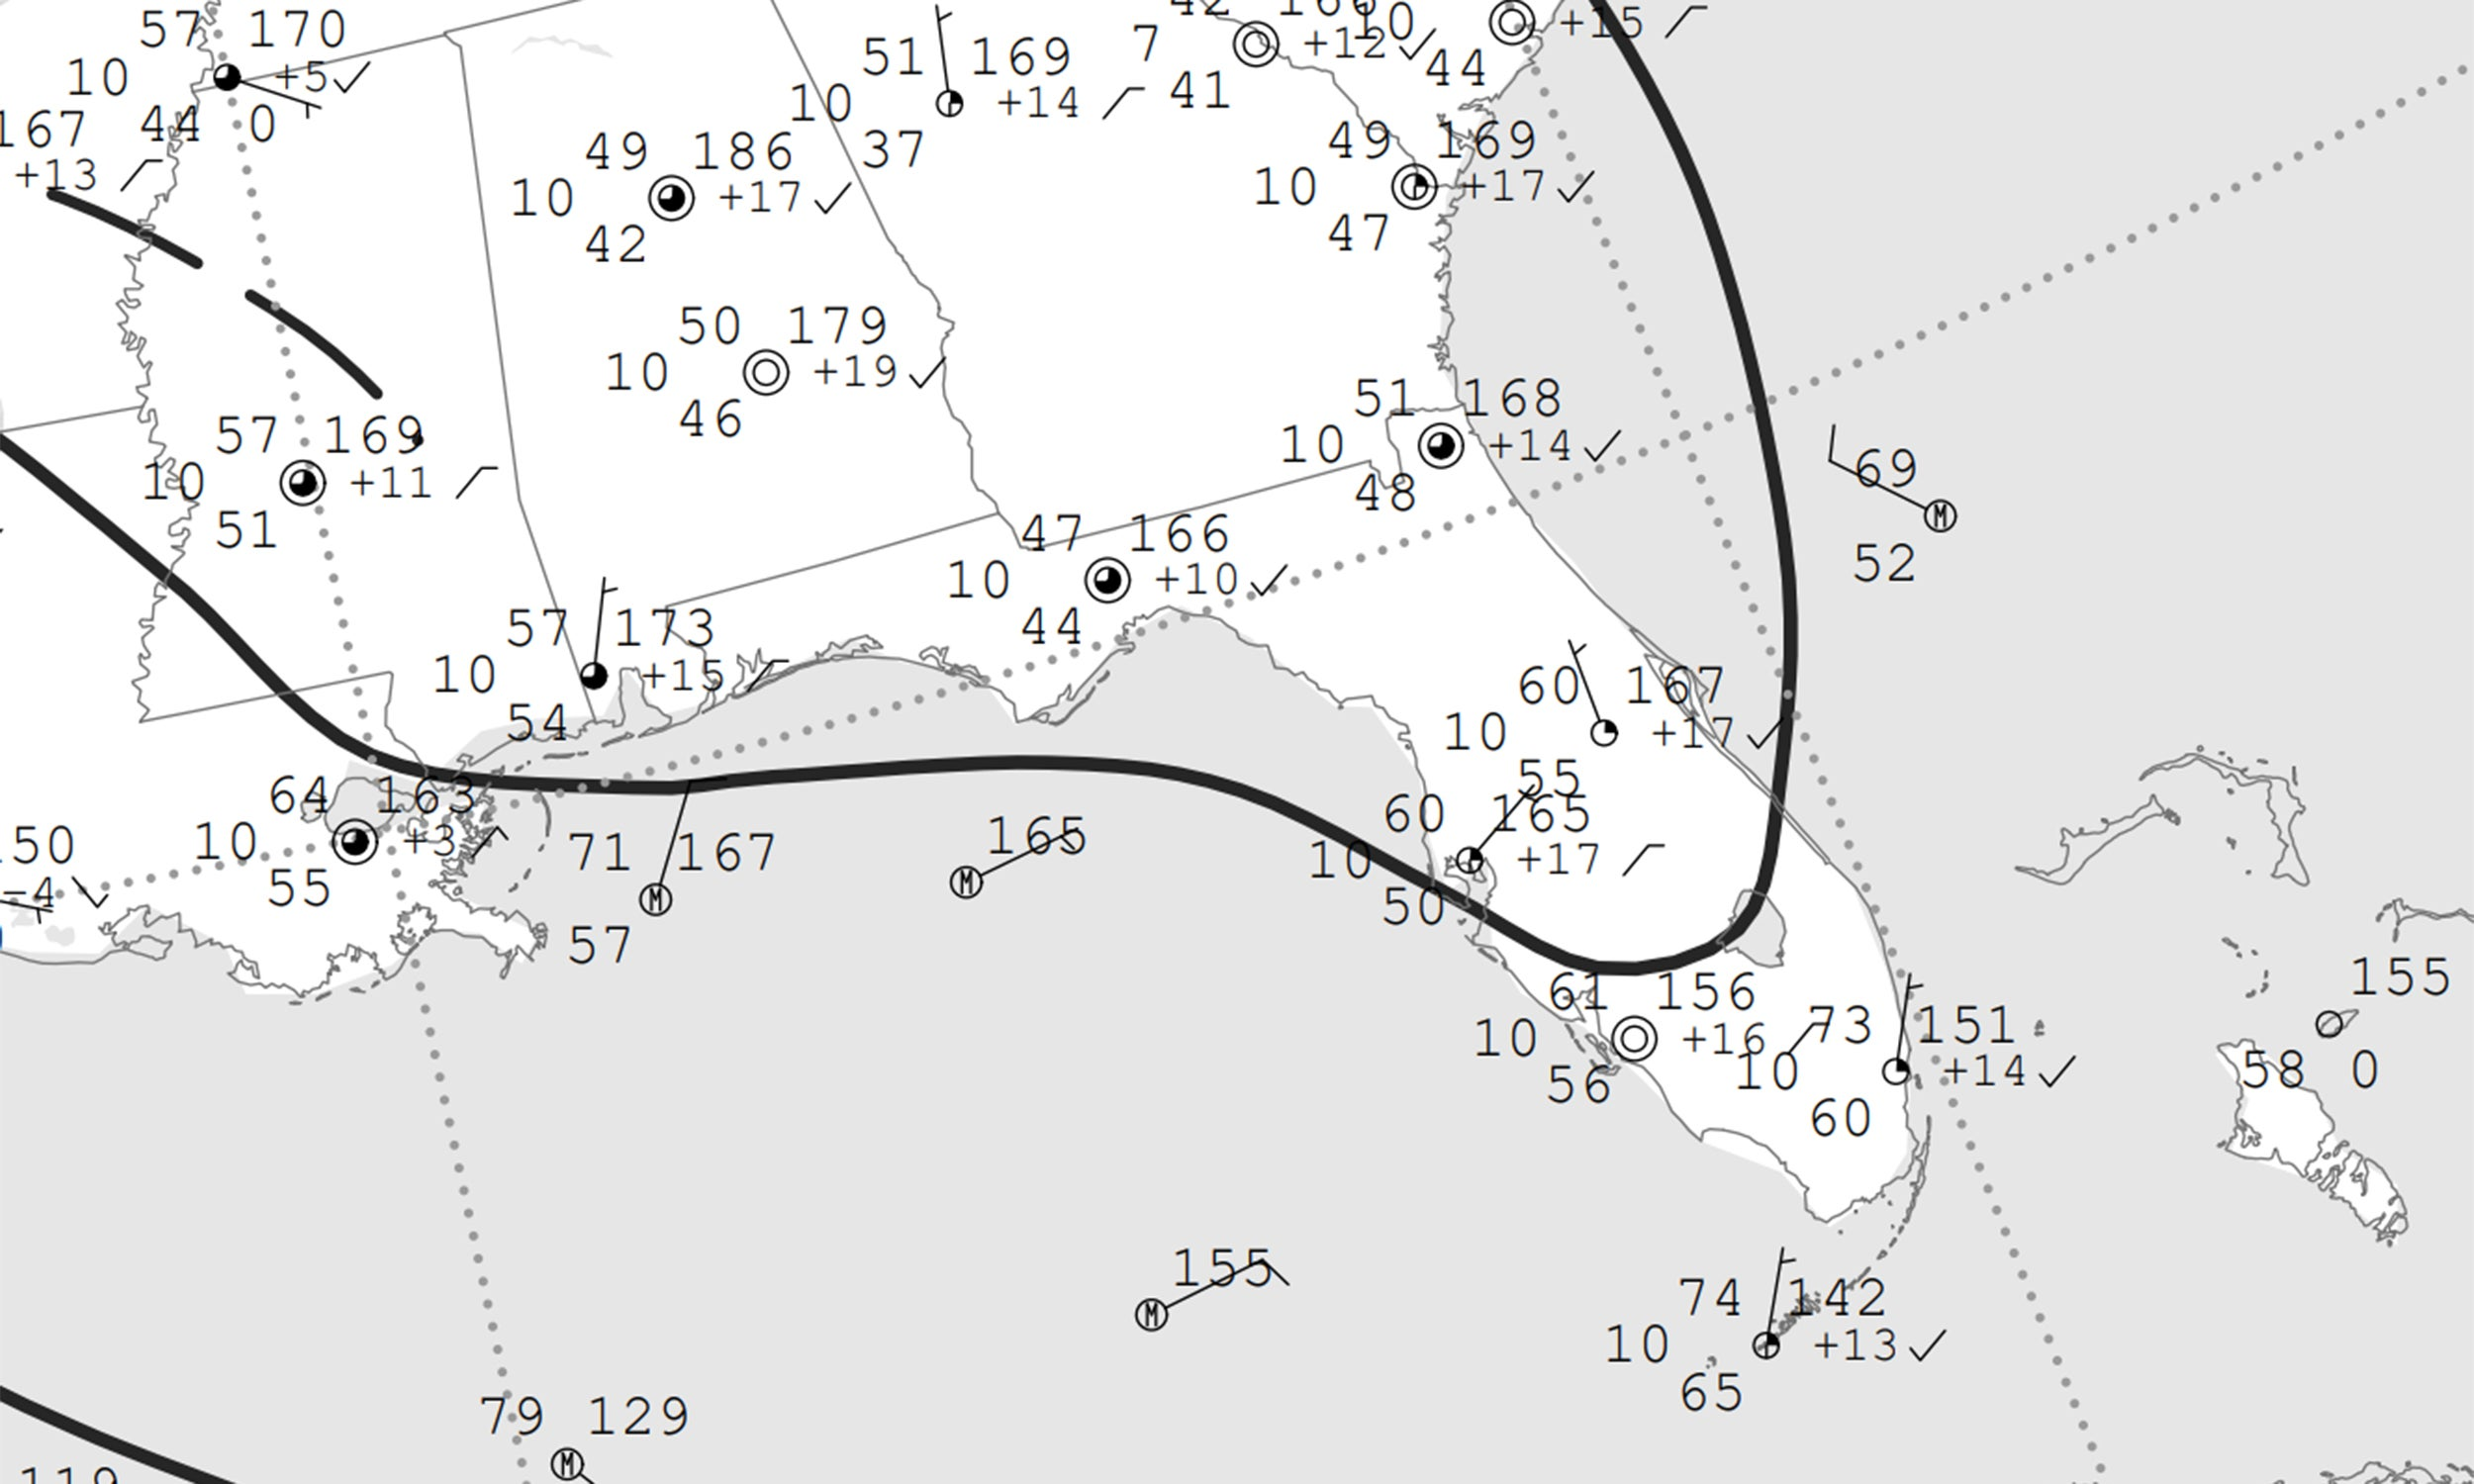 Station plots over the southeastern United States on April 3, 2020